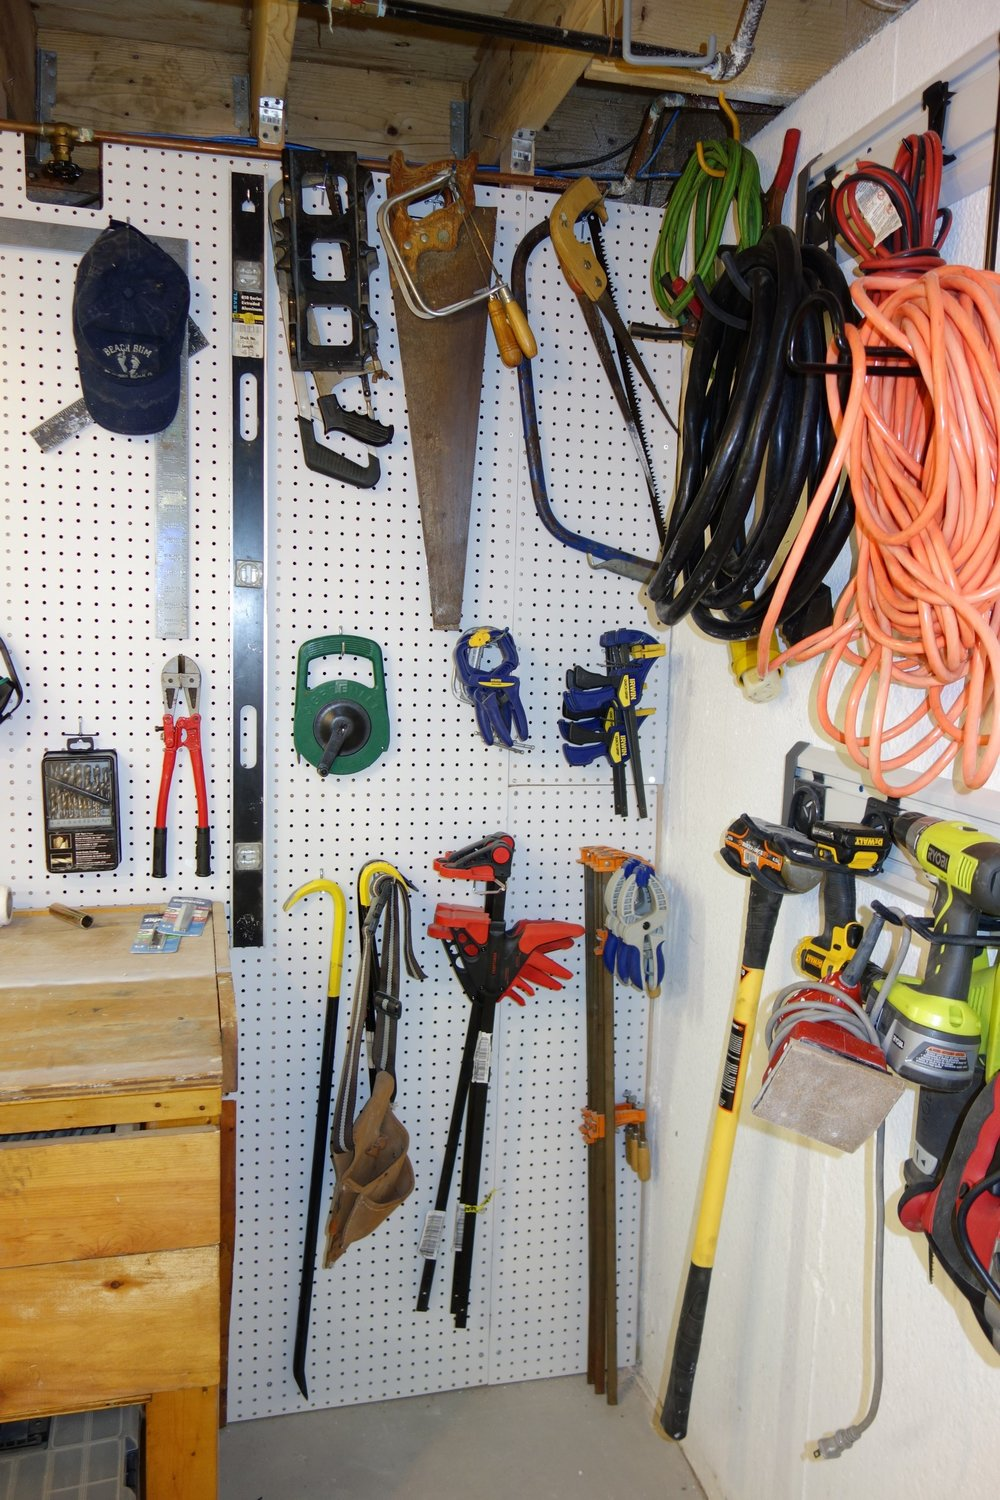 Having a full-length pegboard wall gives extra room for things like long furniture clamps, crowbars, and levels.